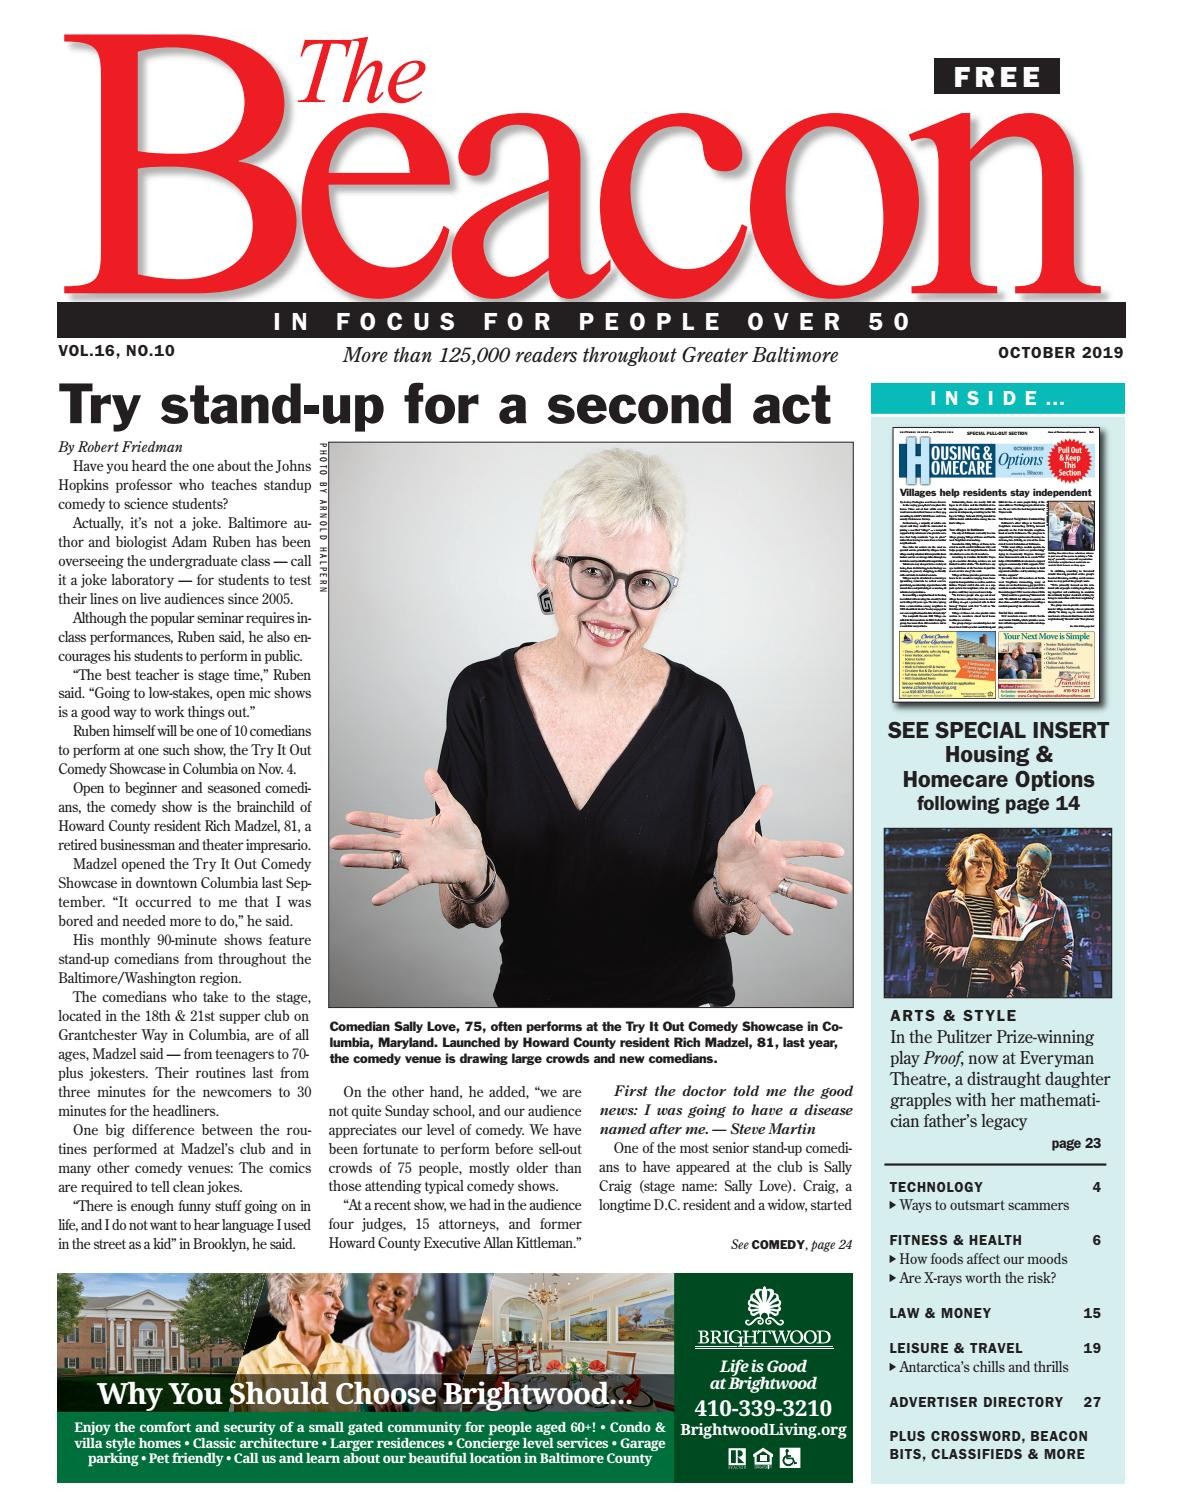 24 Porn Russian Page october 2019 | baltimore beaconthe beacon newspapers - issuu